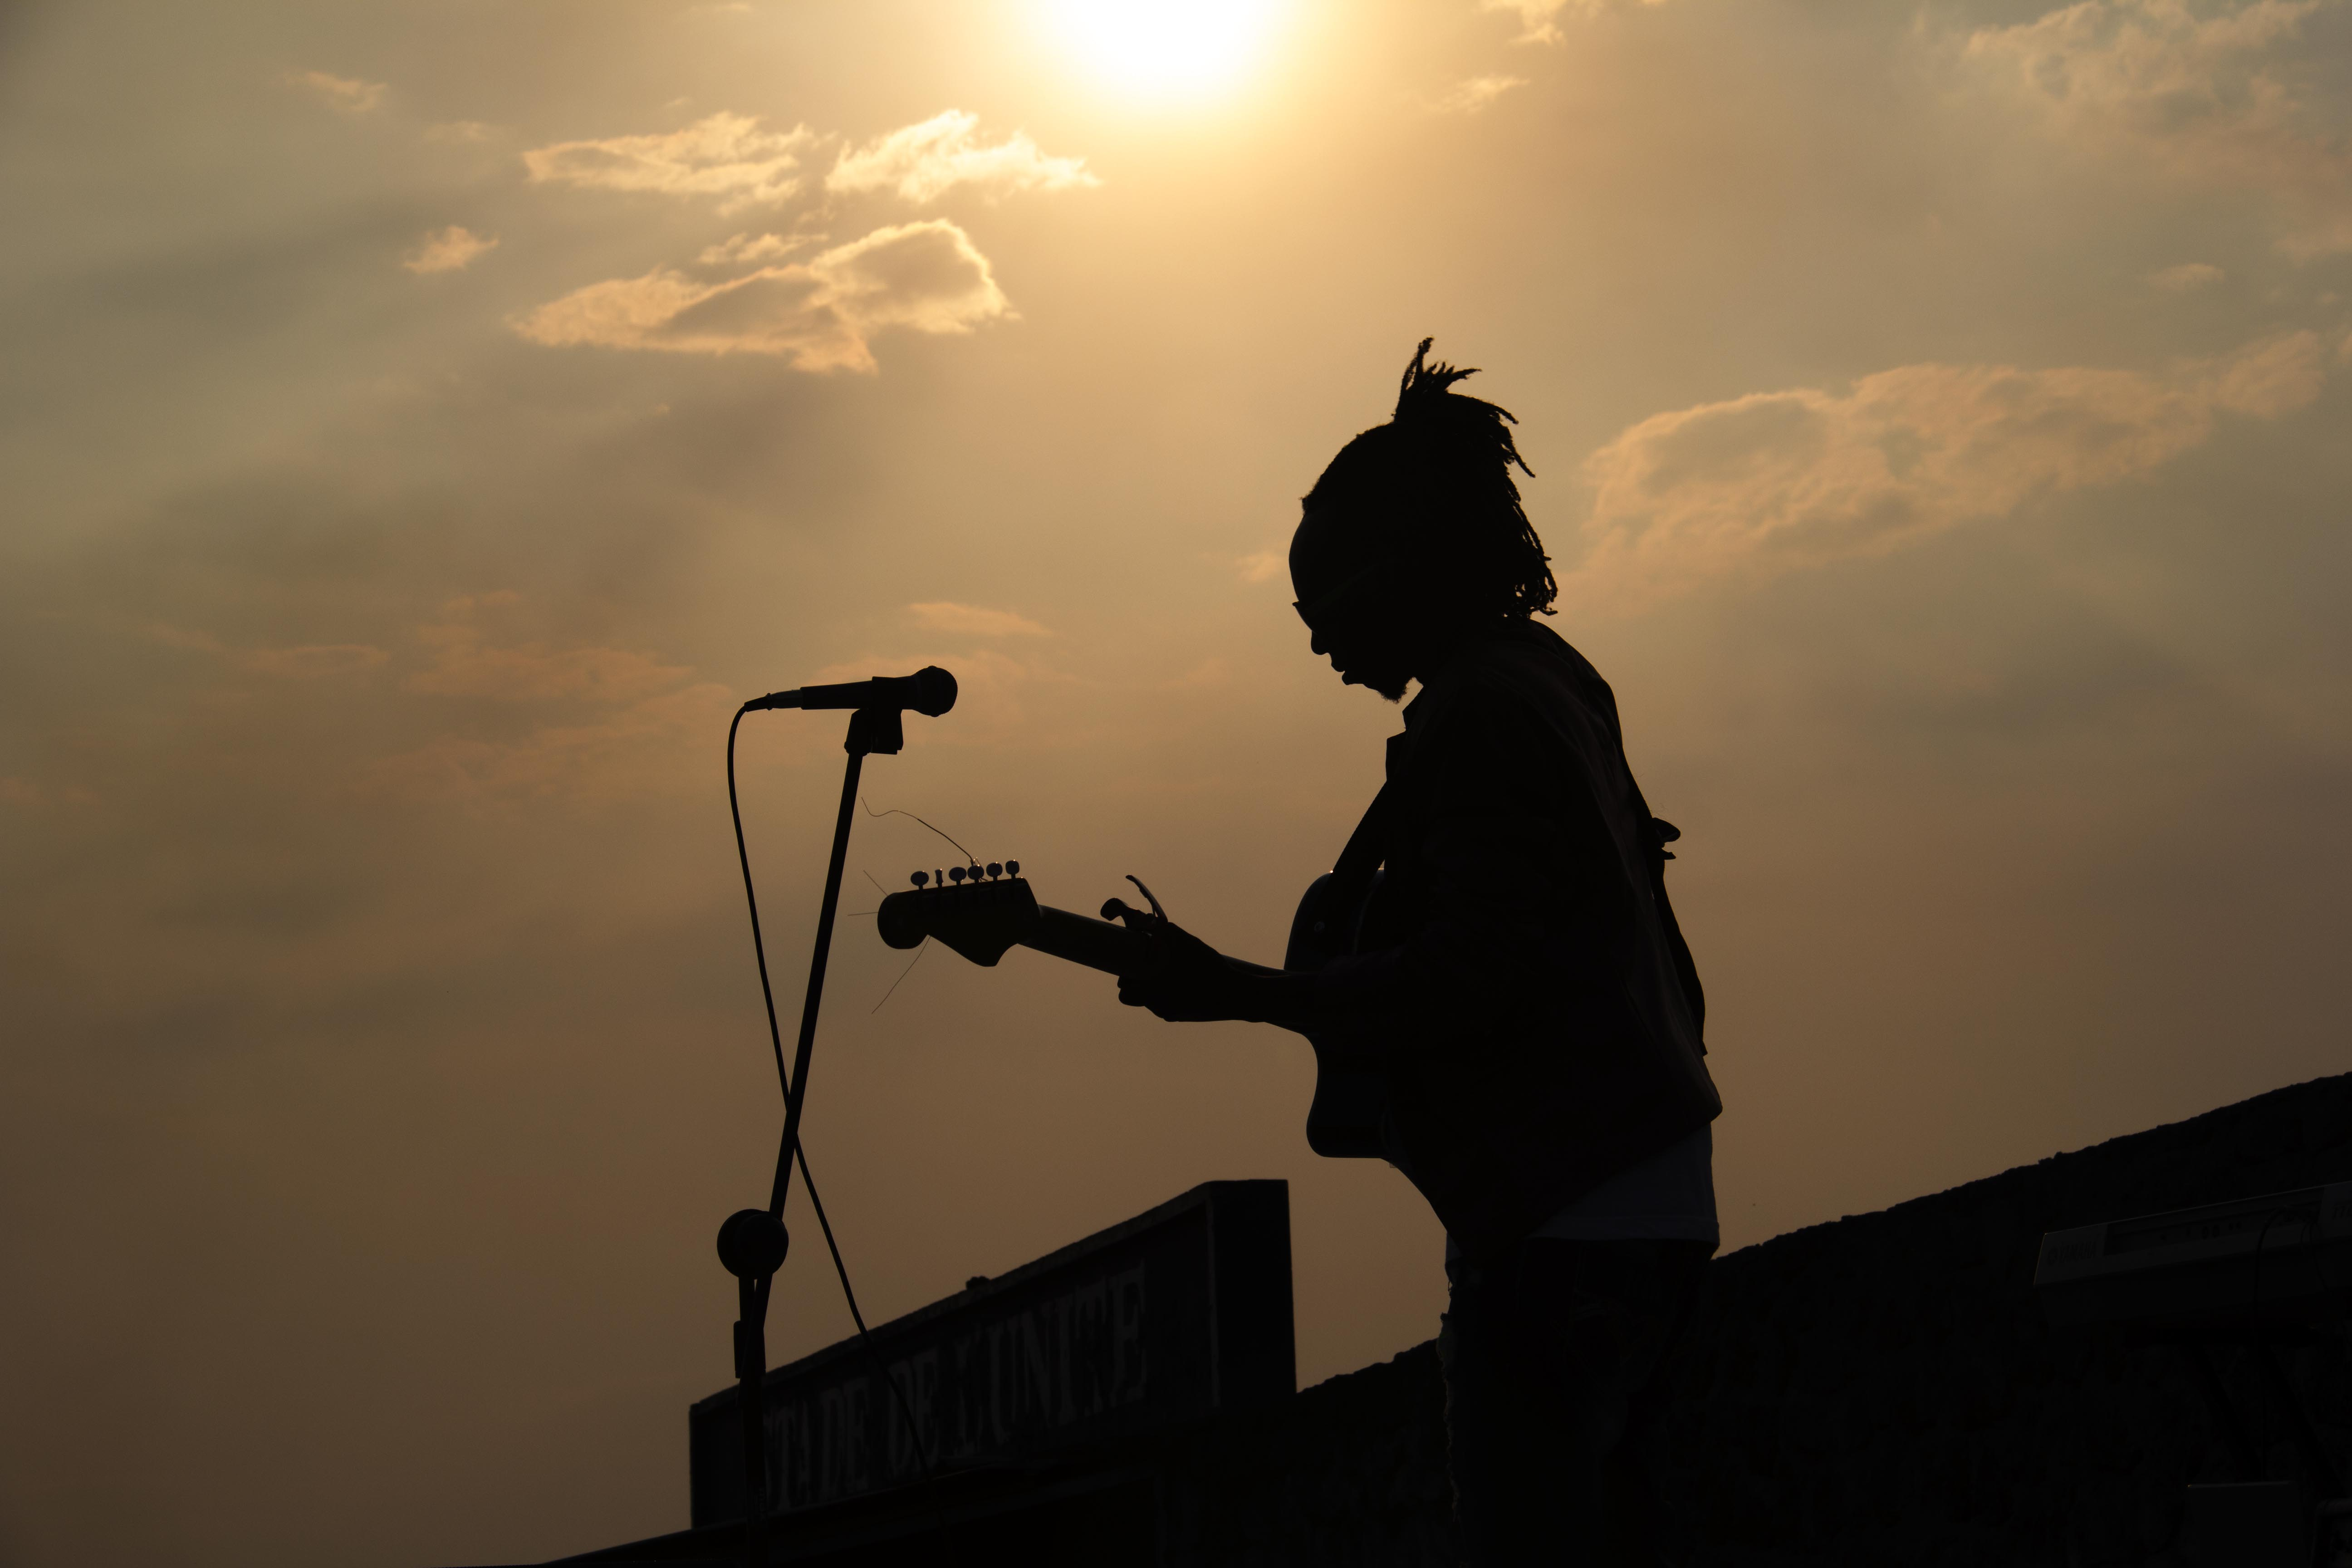 Congo-Goma: Music, Conflict and NGOs